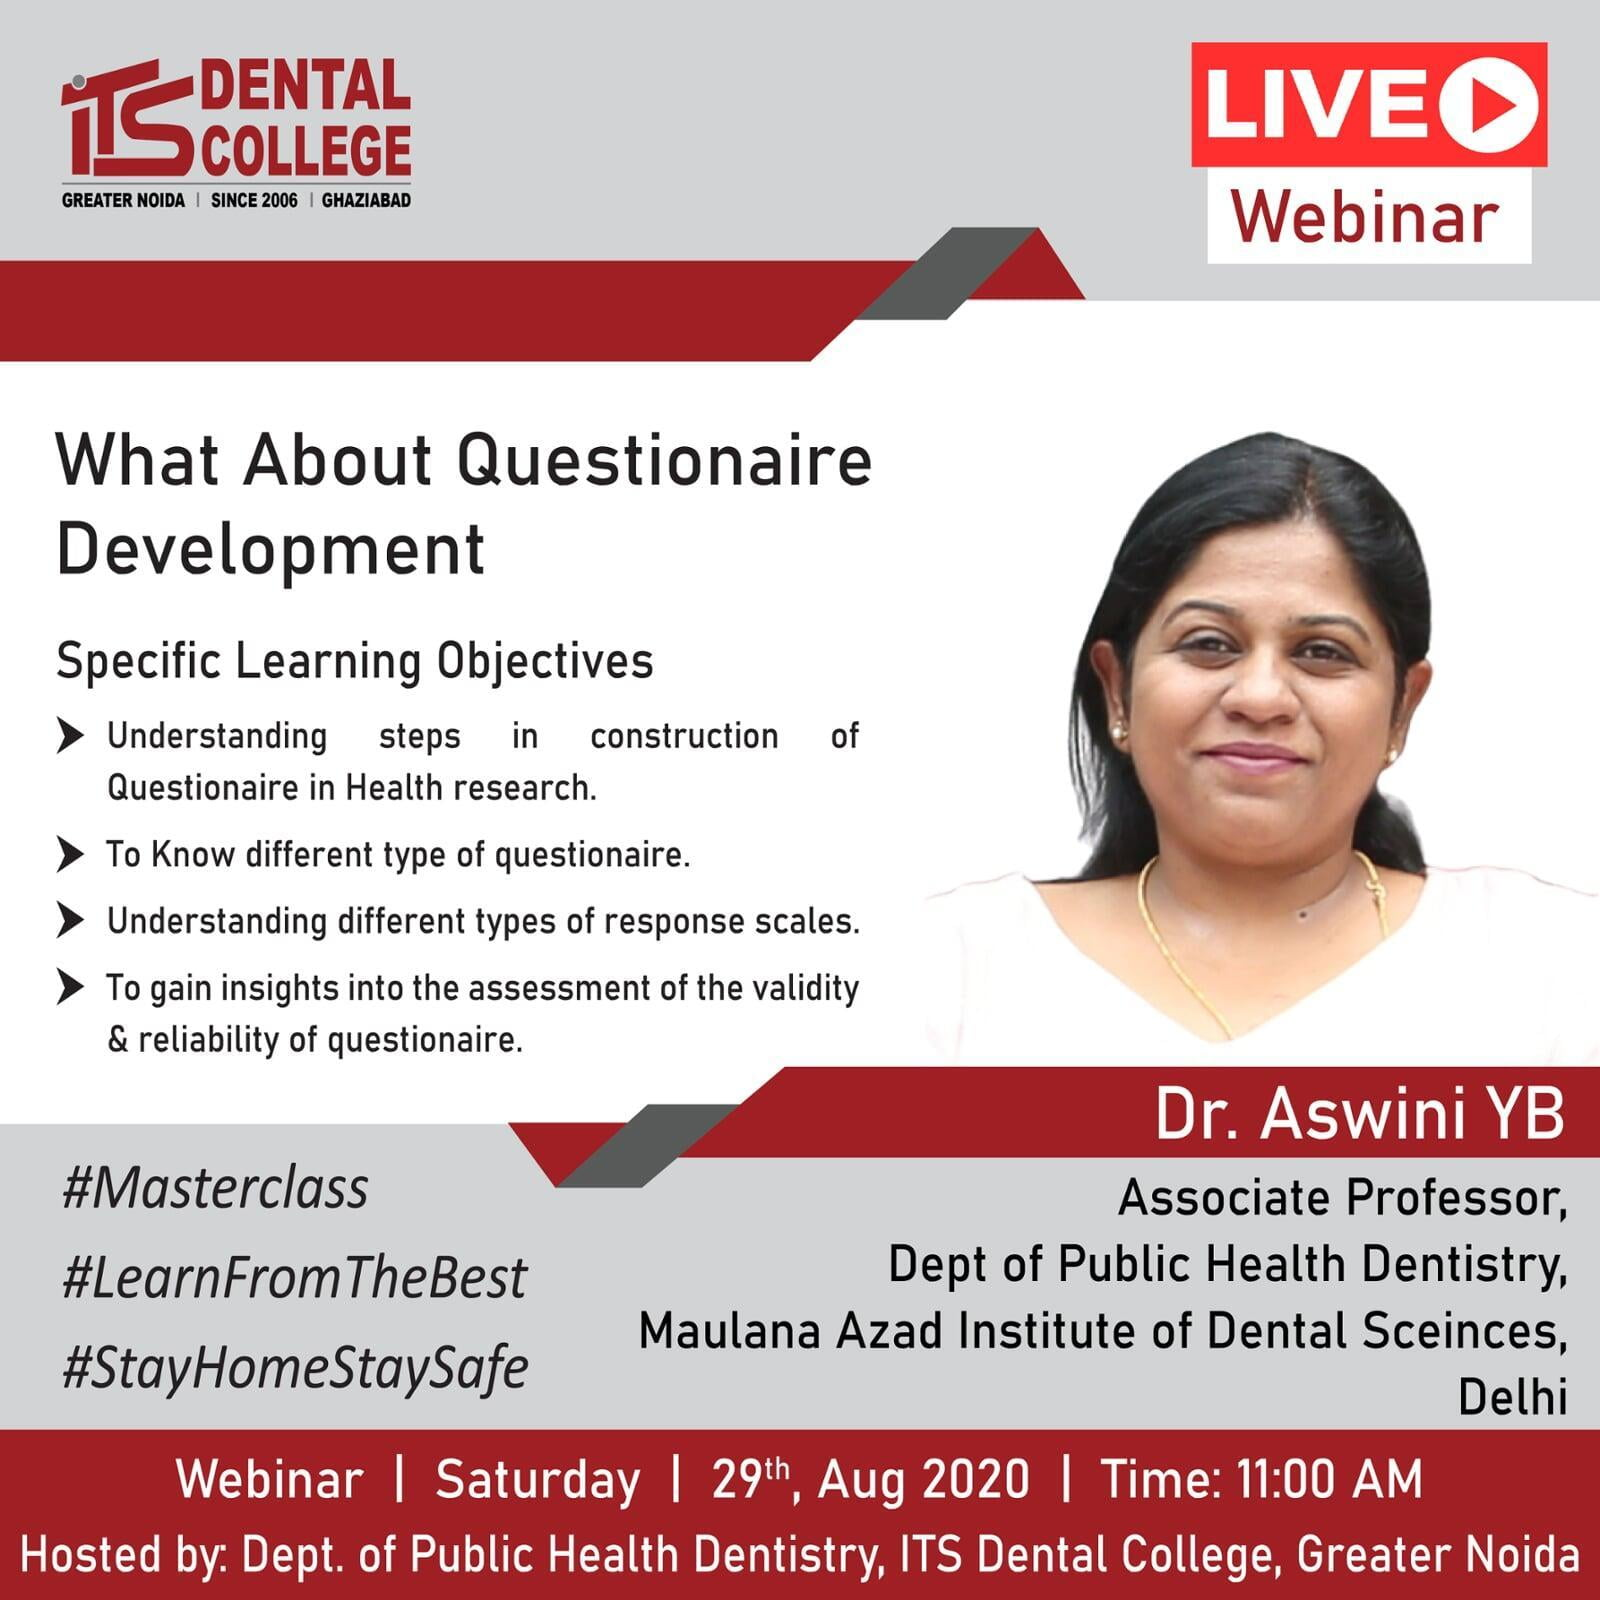 "Live Webinar on ""What about Questionnaire Development"" on 29th August 2020"